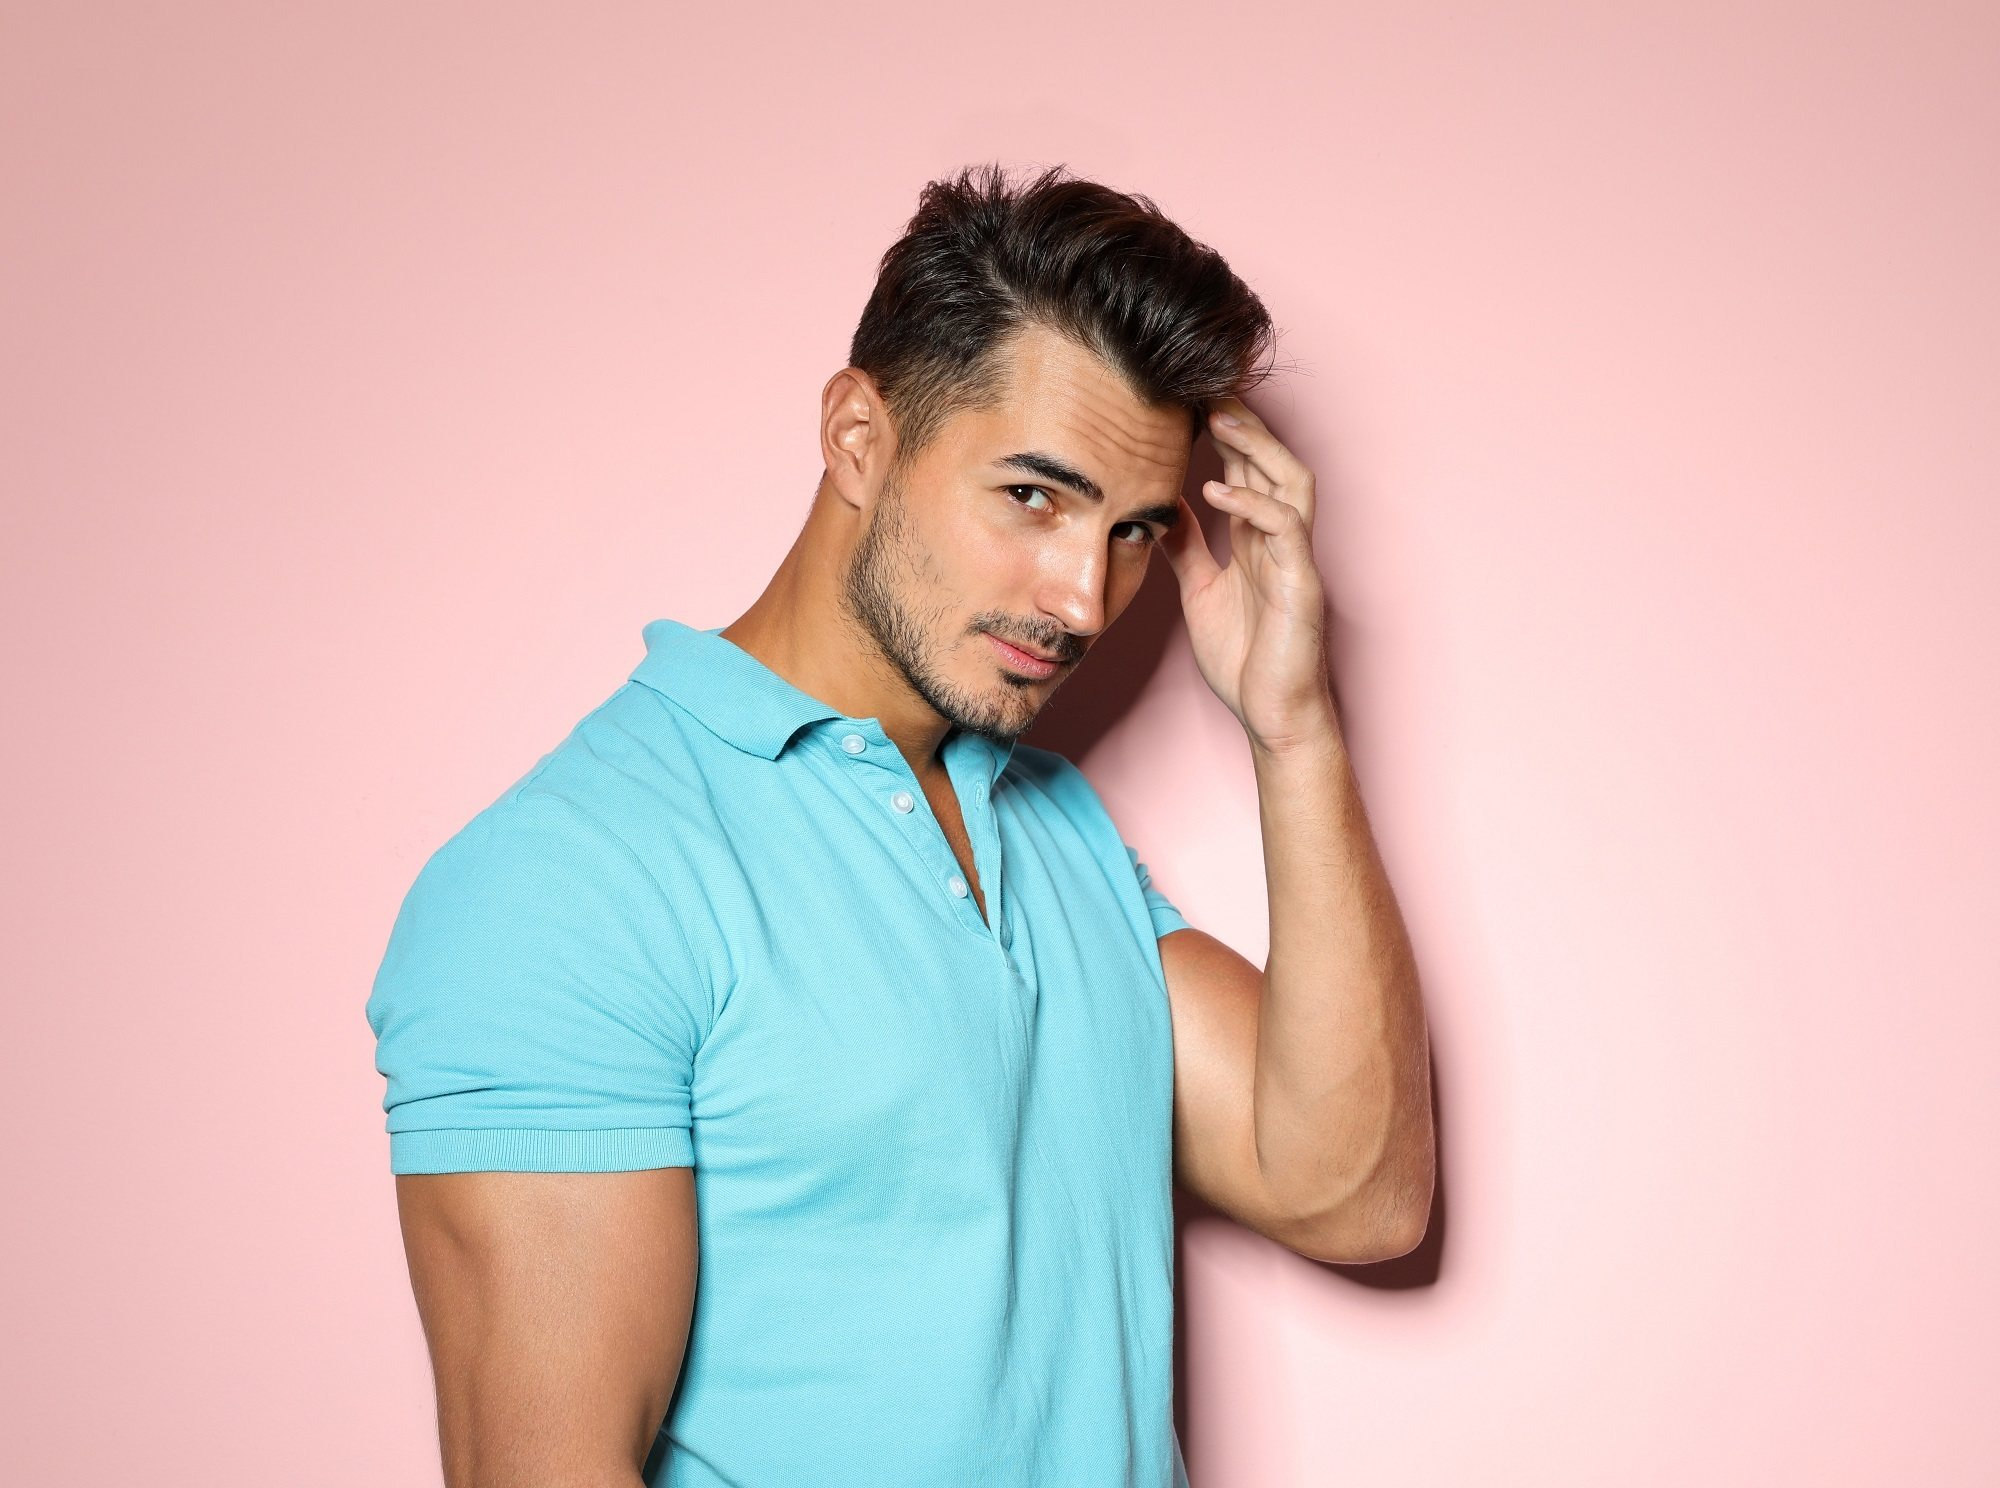 Shaved side hairstyles men: Main wearing a blue polo shirt touching his hair and standing against a pink background